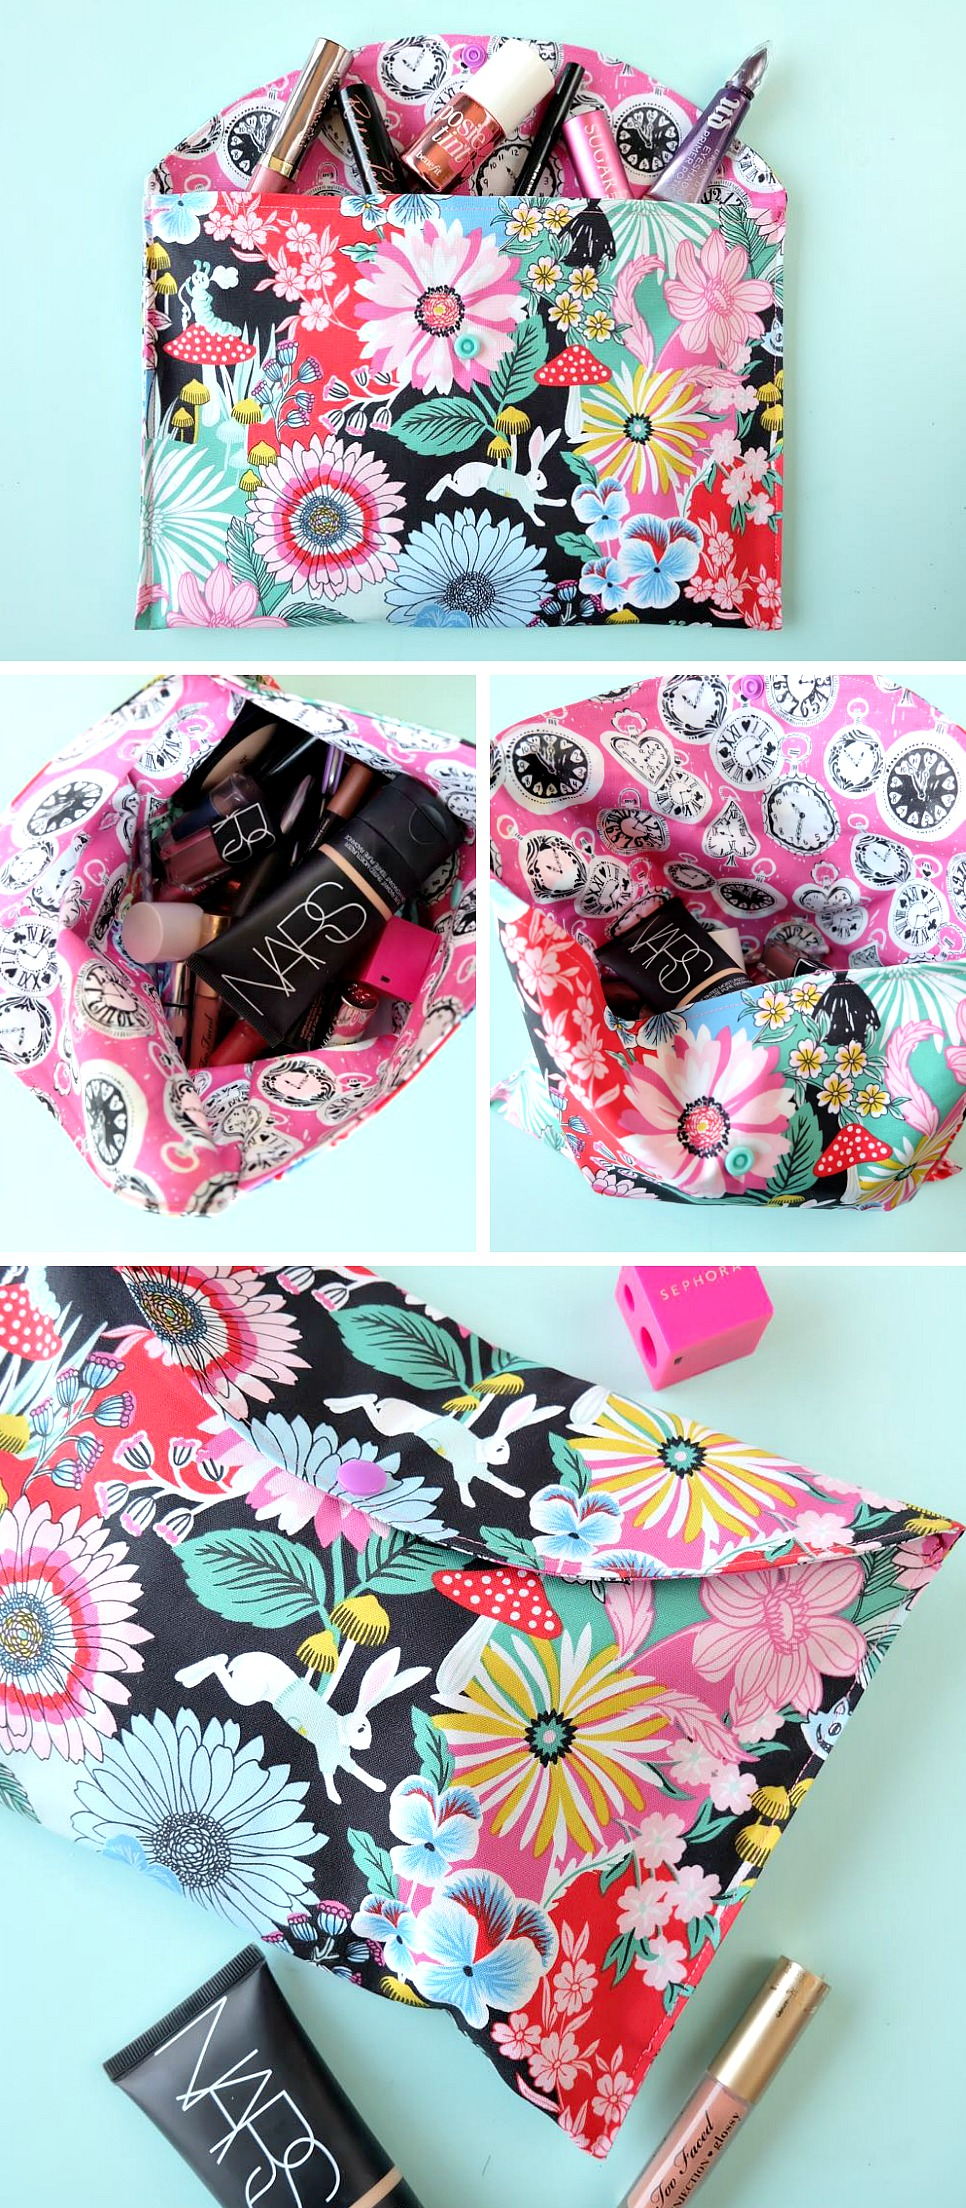 This 20 Minute Makeup Bag Sewing Tutorial is the perfect sewing project for teens, tweens, beginners or anyone learning to sew. Quick and easy, it makes an ideal handmade gift idea perfect for Mother's Day, Christmas, Teacher Appreciation or bridal party gifts!